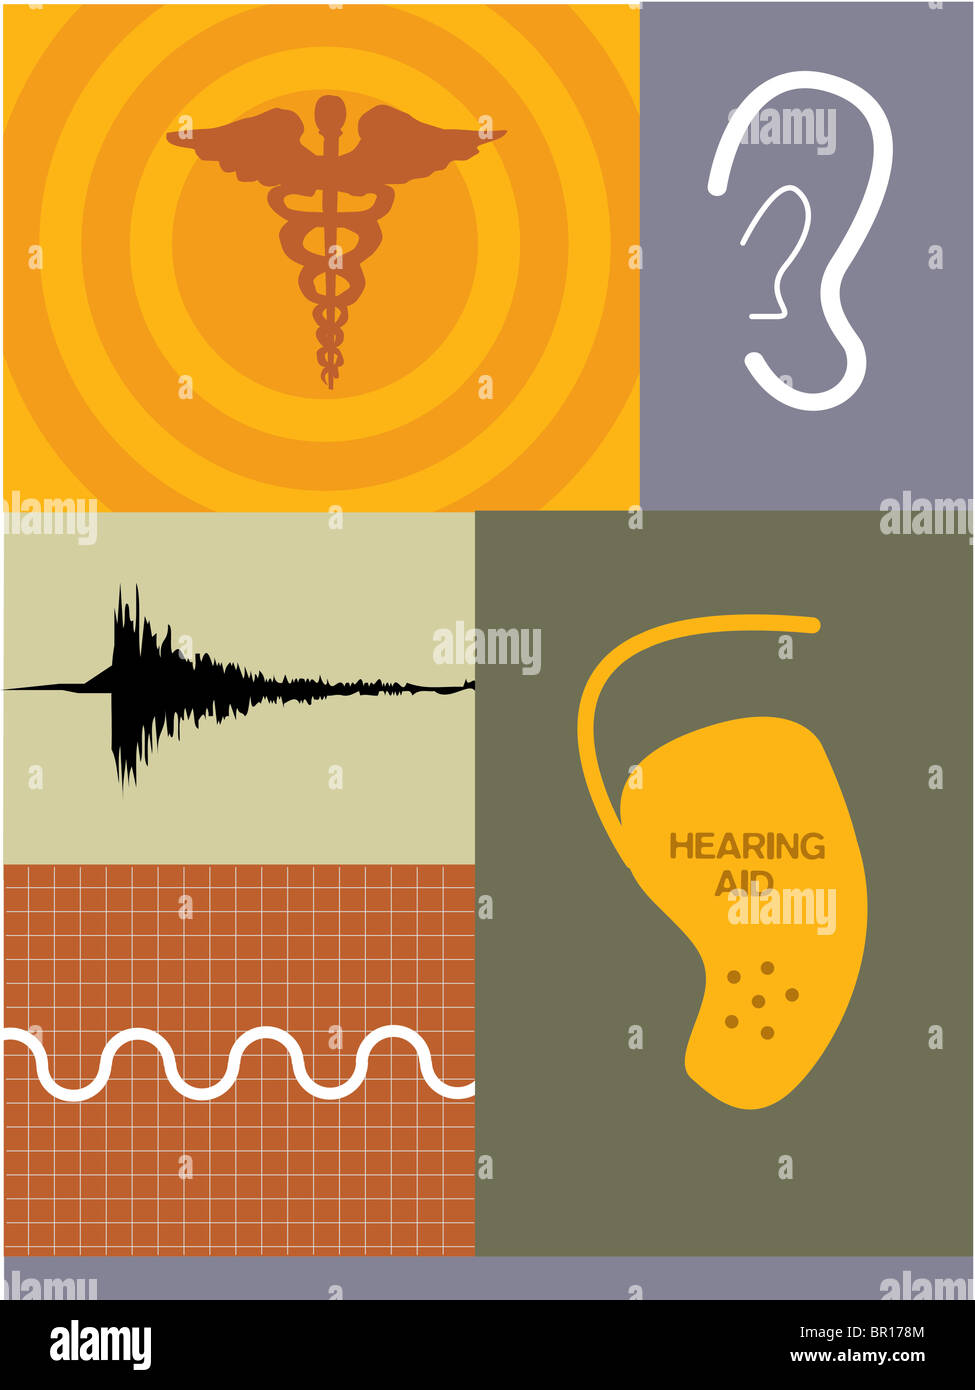 Illustrations Of Soundwaves A Hearing Aid And Caduceus Symbol Stock